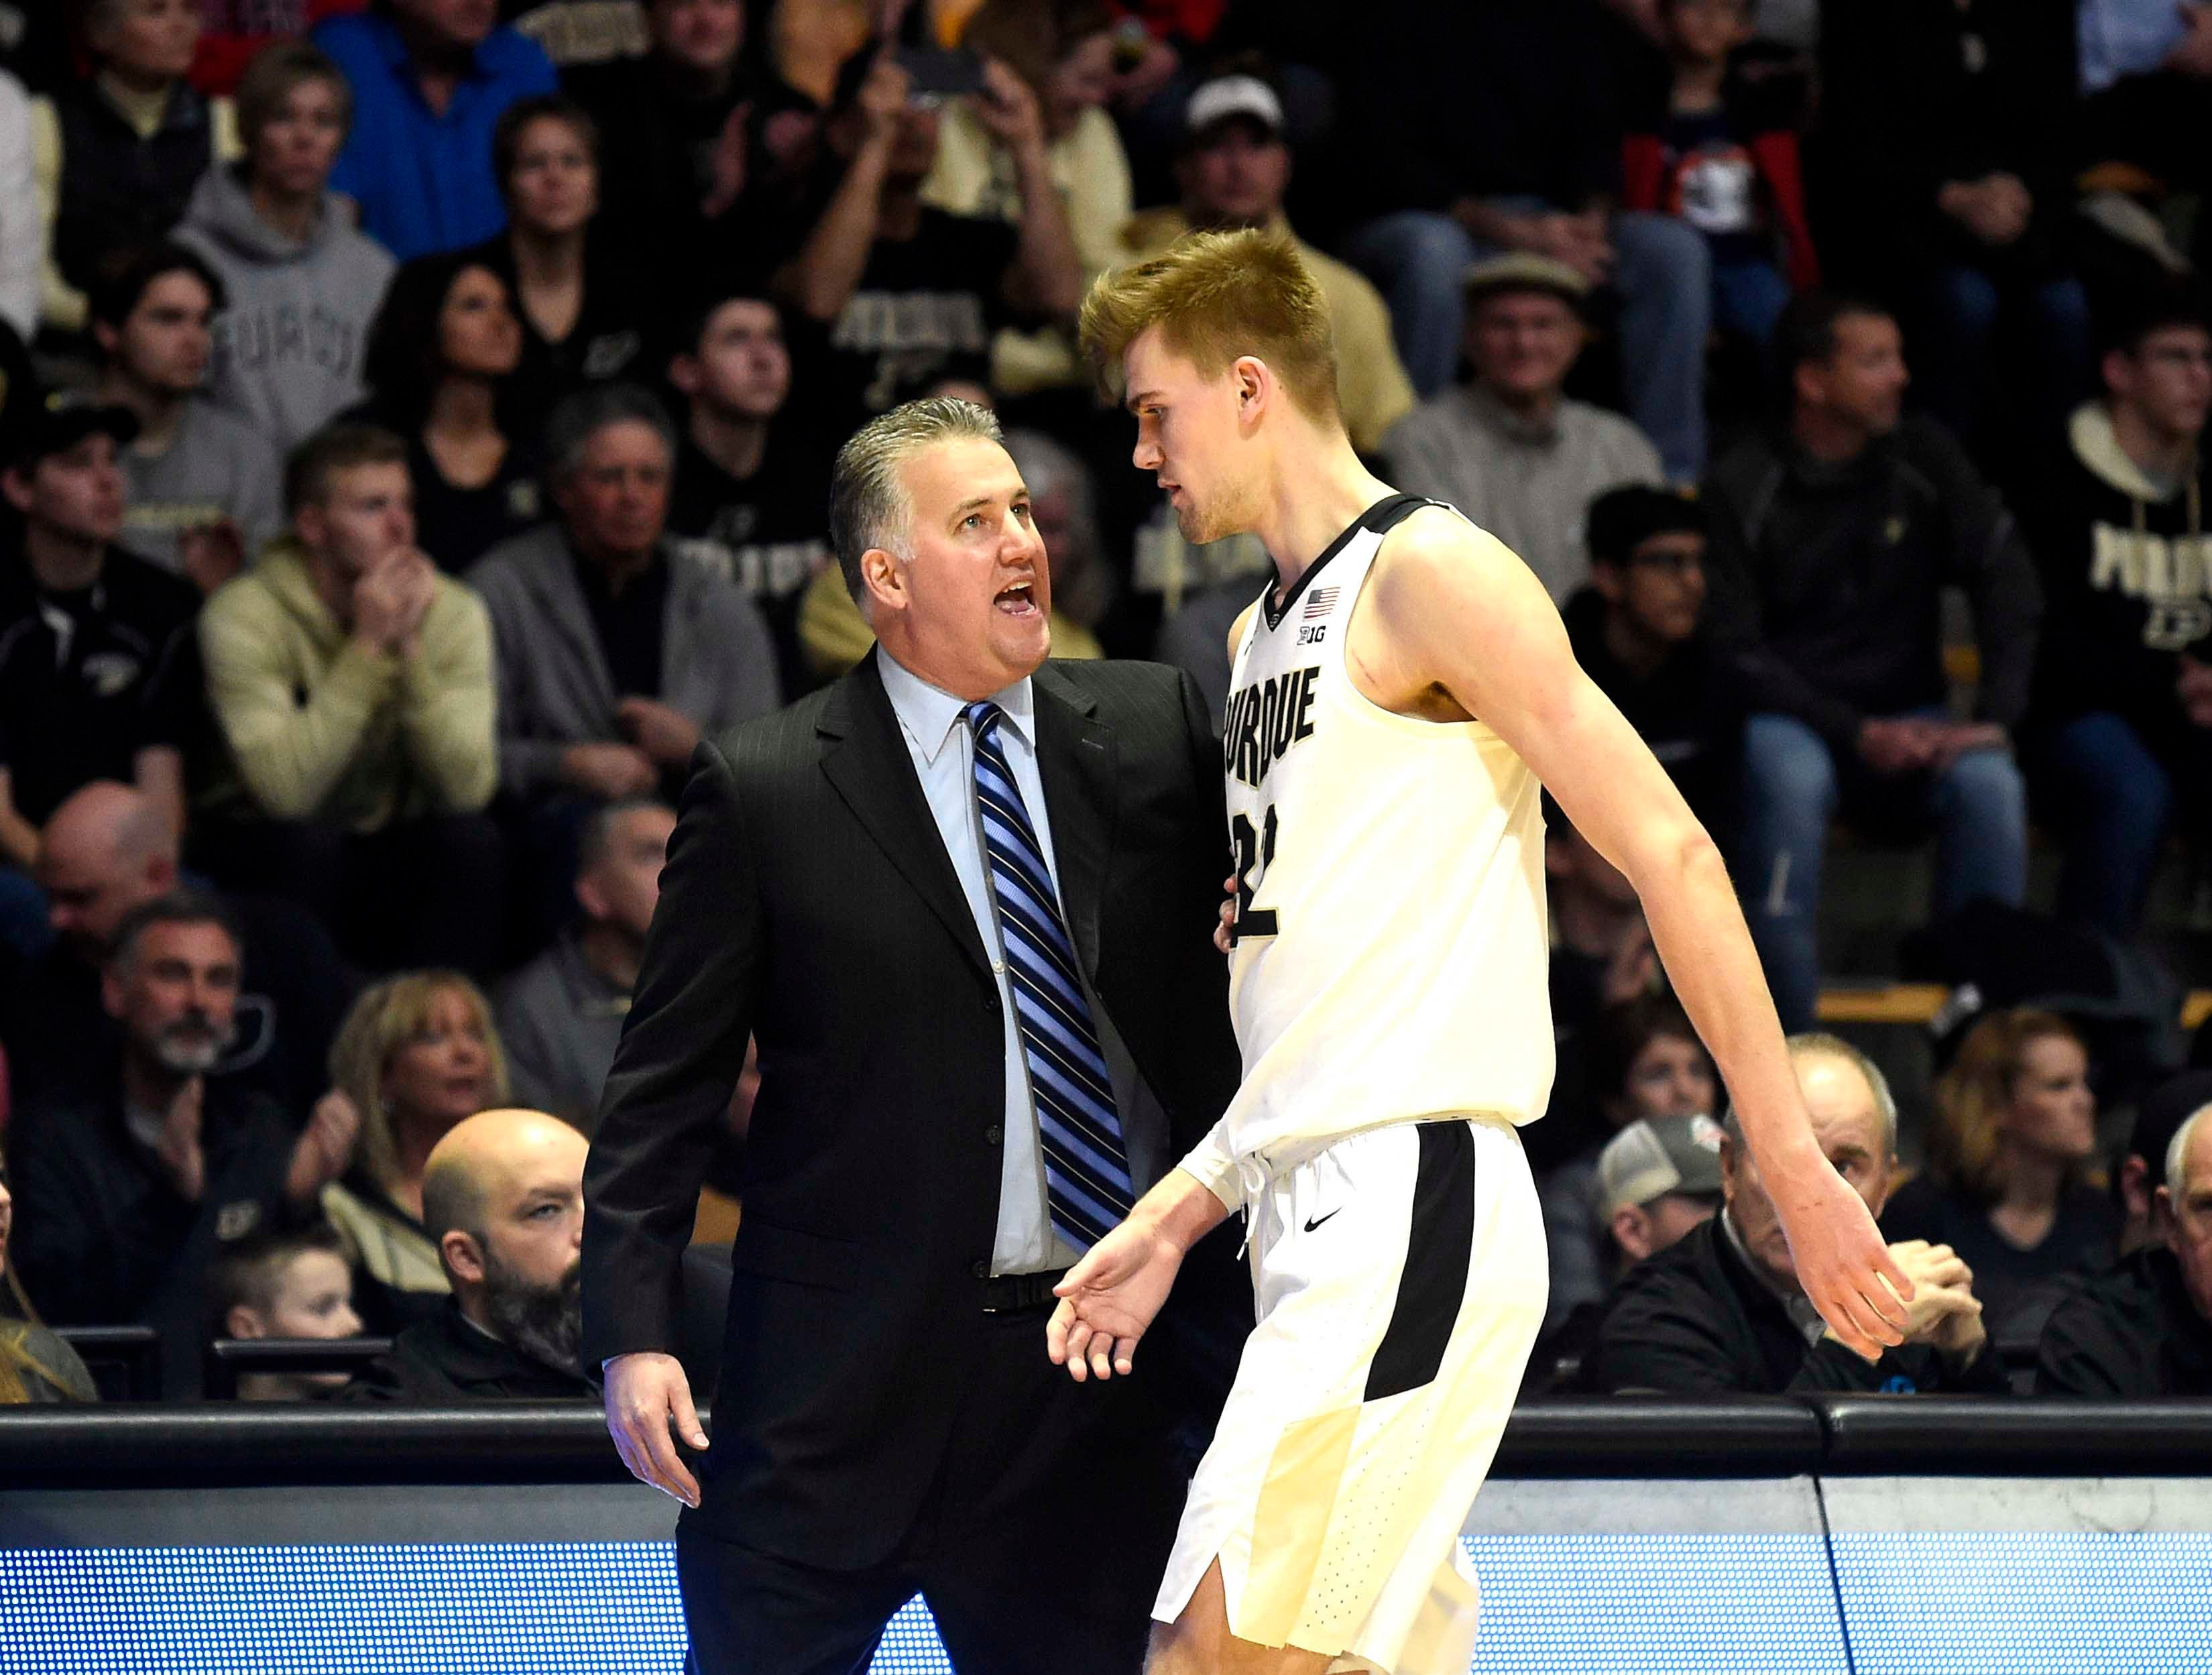 Jan 15, 2019; West Lafayette, IN, USA; Purdue Boilermakers head coach Matt Painter talks to Purdue Boilermakers center Matt Haarms (32) in the first half at Mackey Arena. Mandatory Credit: Sandra Dukes-USA TODAY Sports